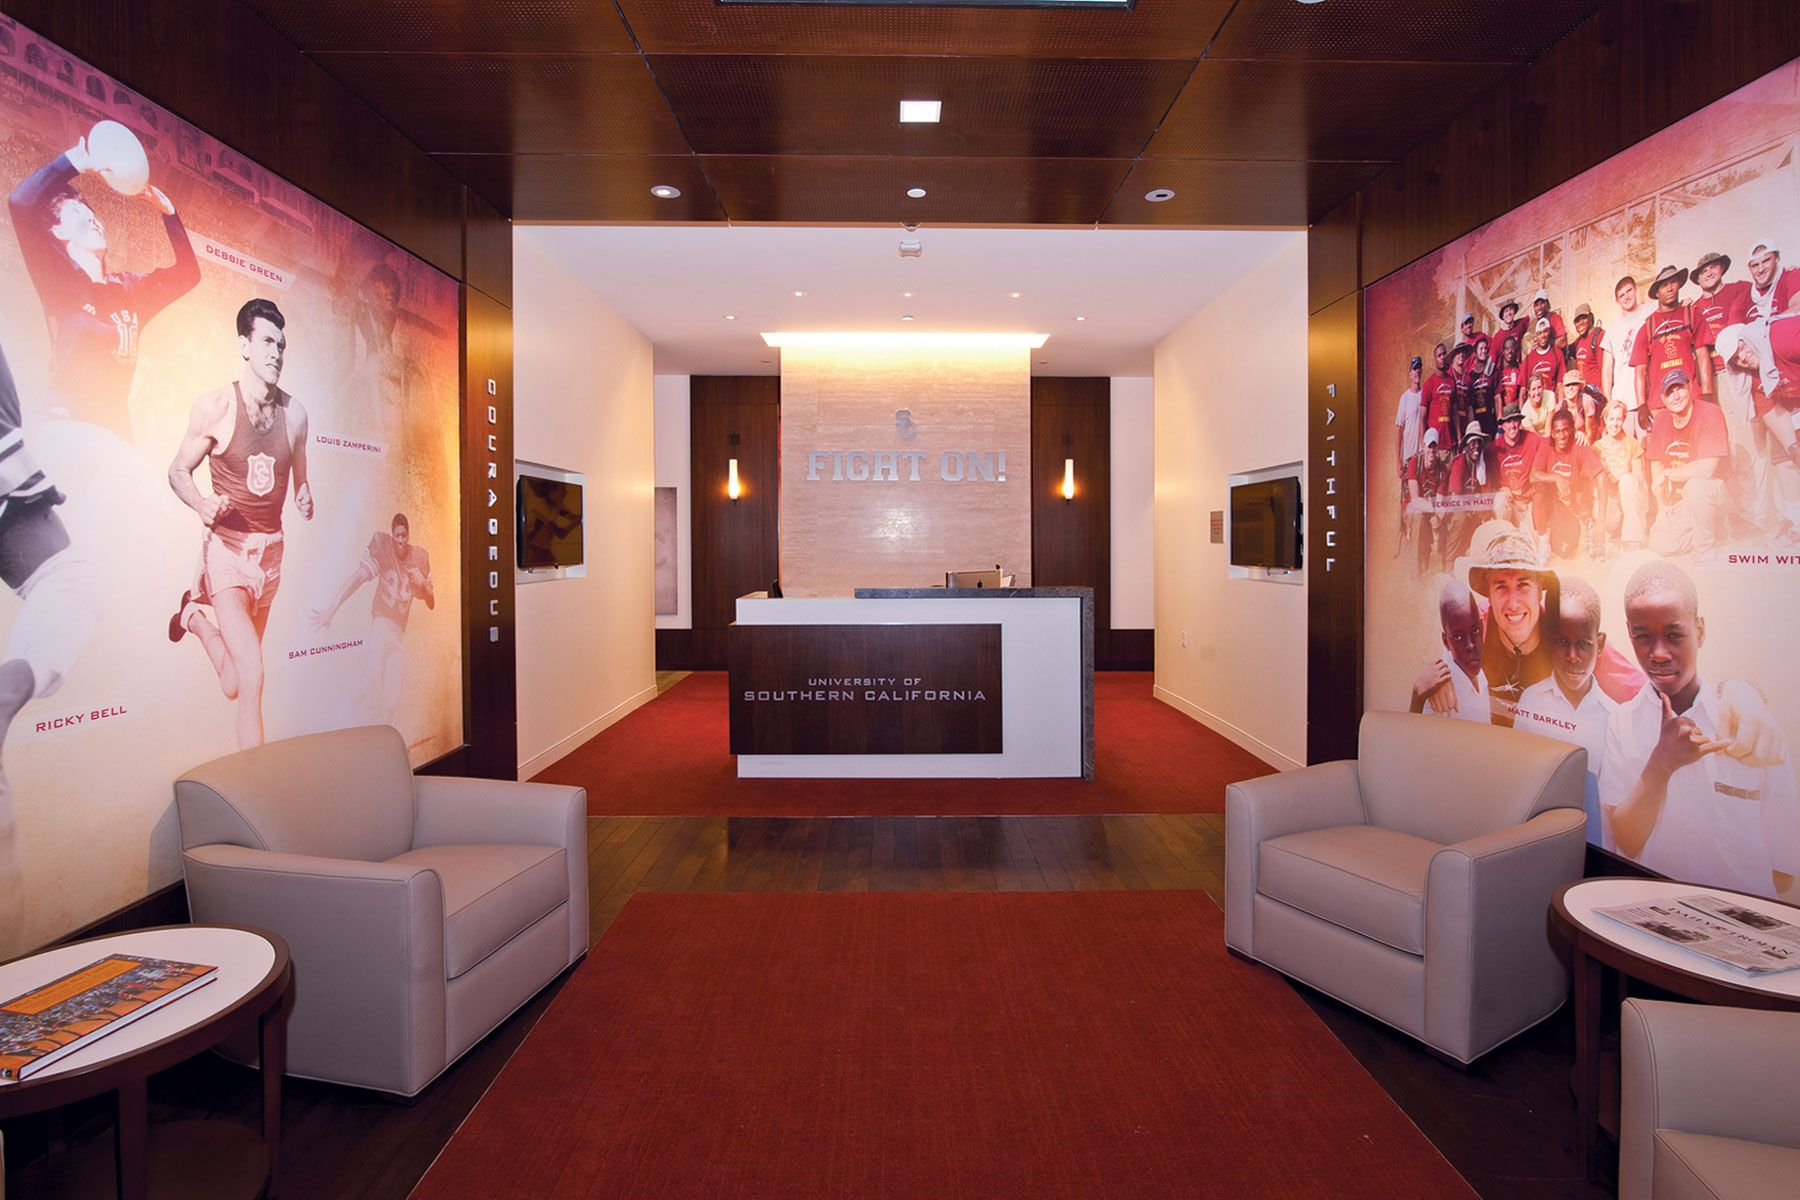 university of southern california heritage hall athletic design